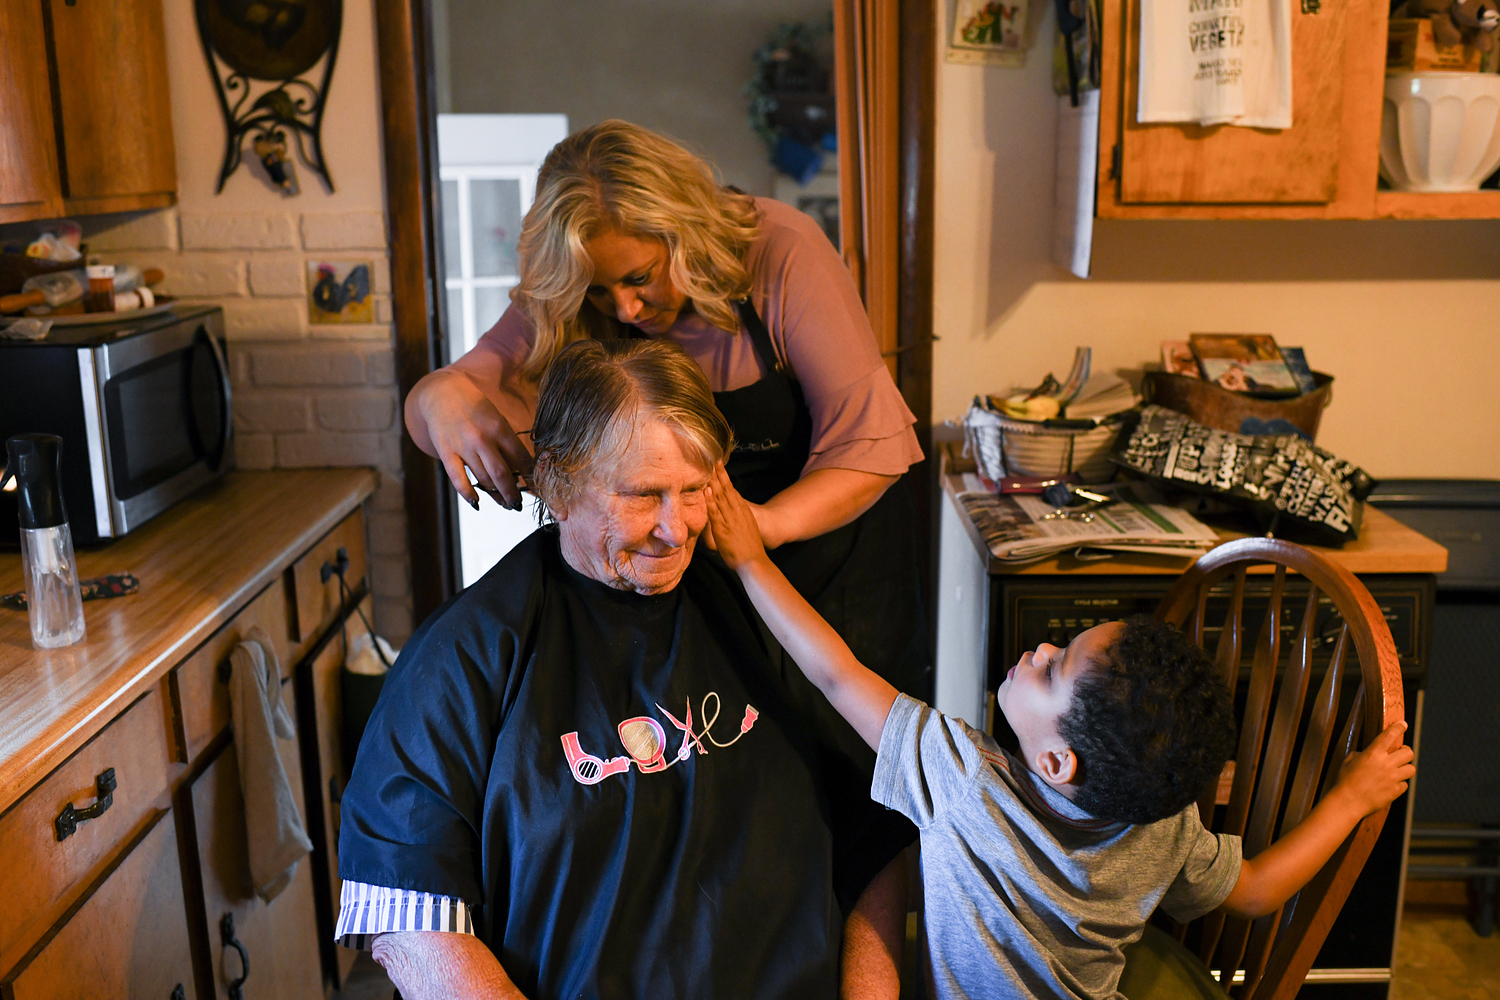 MPW70: Anneliese gives her great grandmother Audra Jackson a haircut at their house in Mountain Grove. Trained as a cosmetologist, Anneliese, 35, co-founded her hair salon, The Shop, with her friend Tana Byerly two years ago.